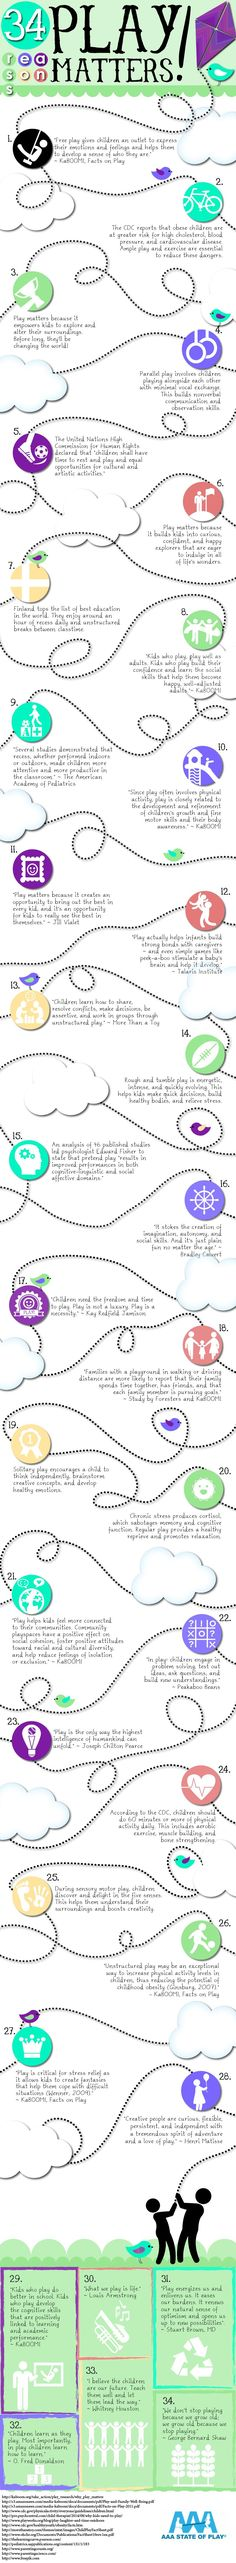 34 Reasons Why Play Matters #infographic #Health #Parenting #Education